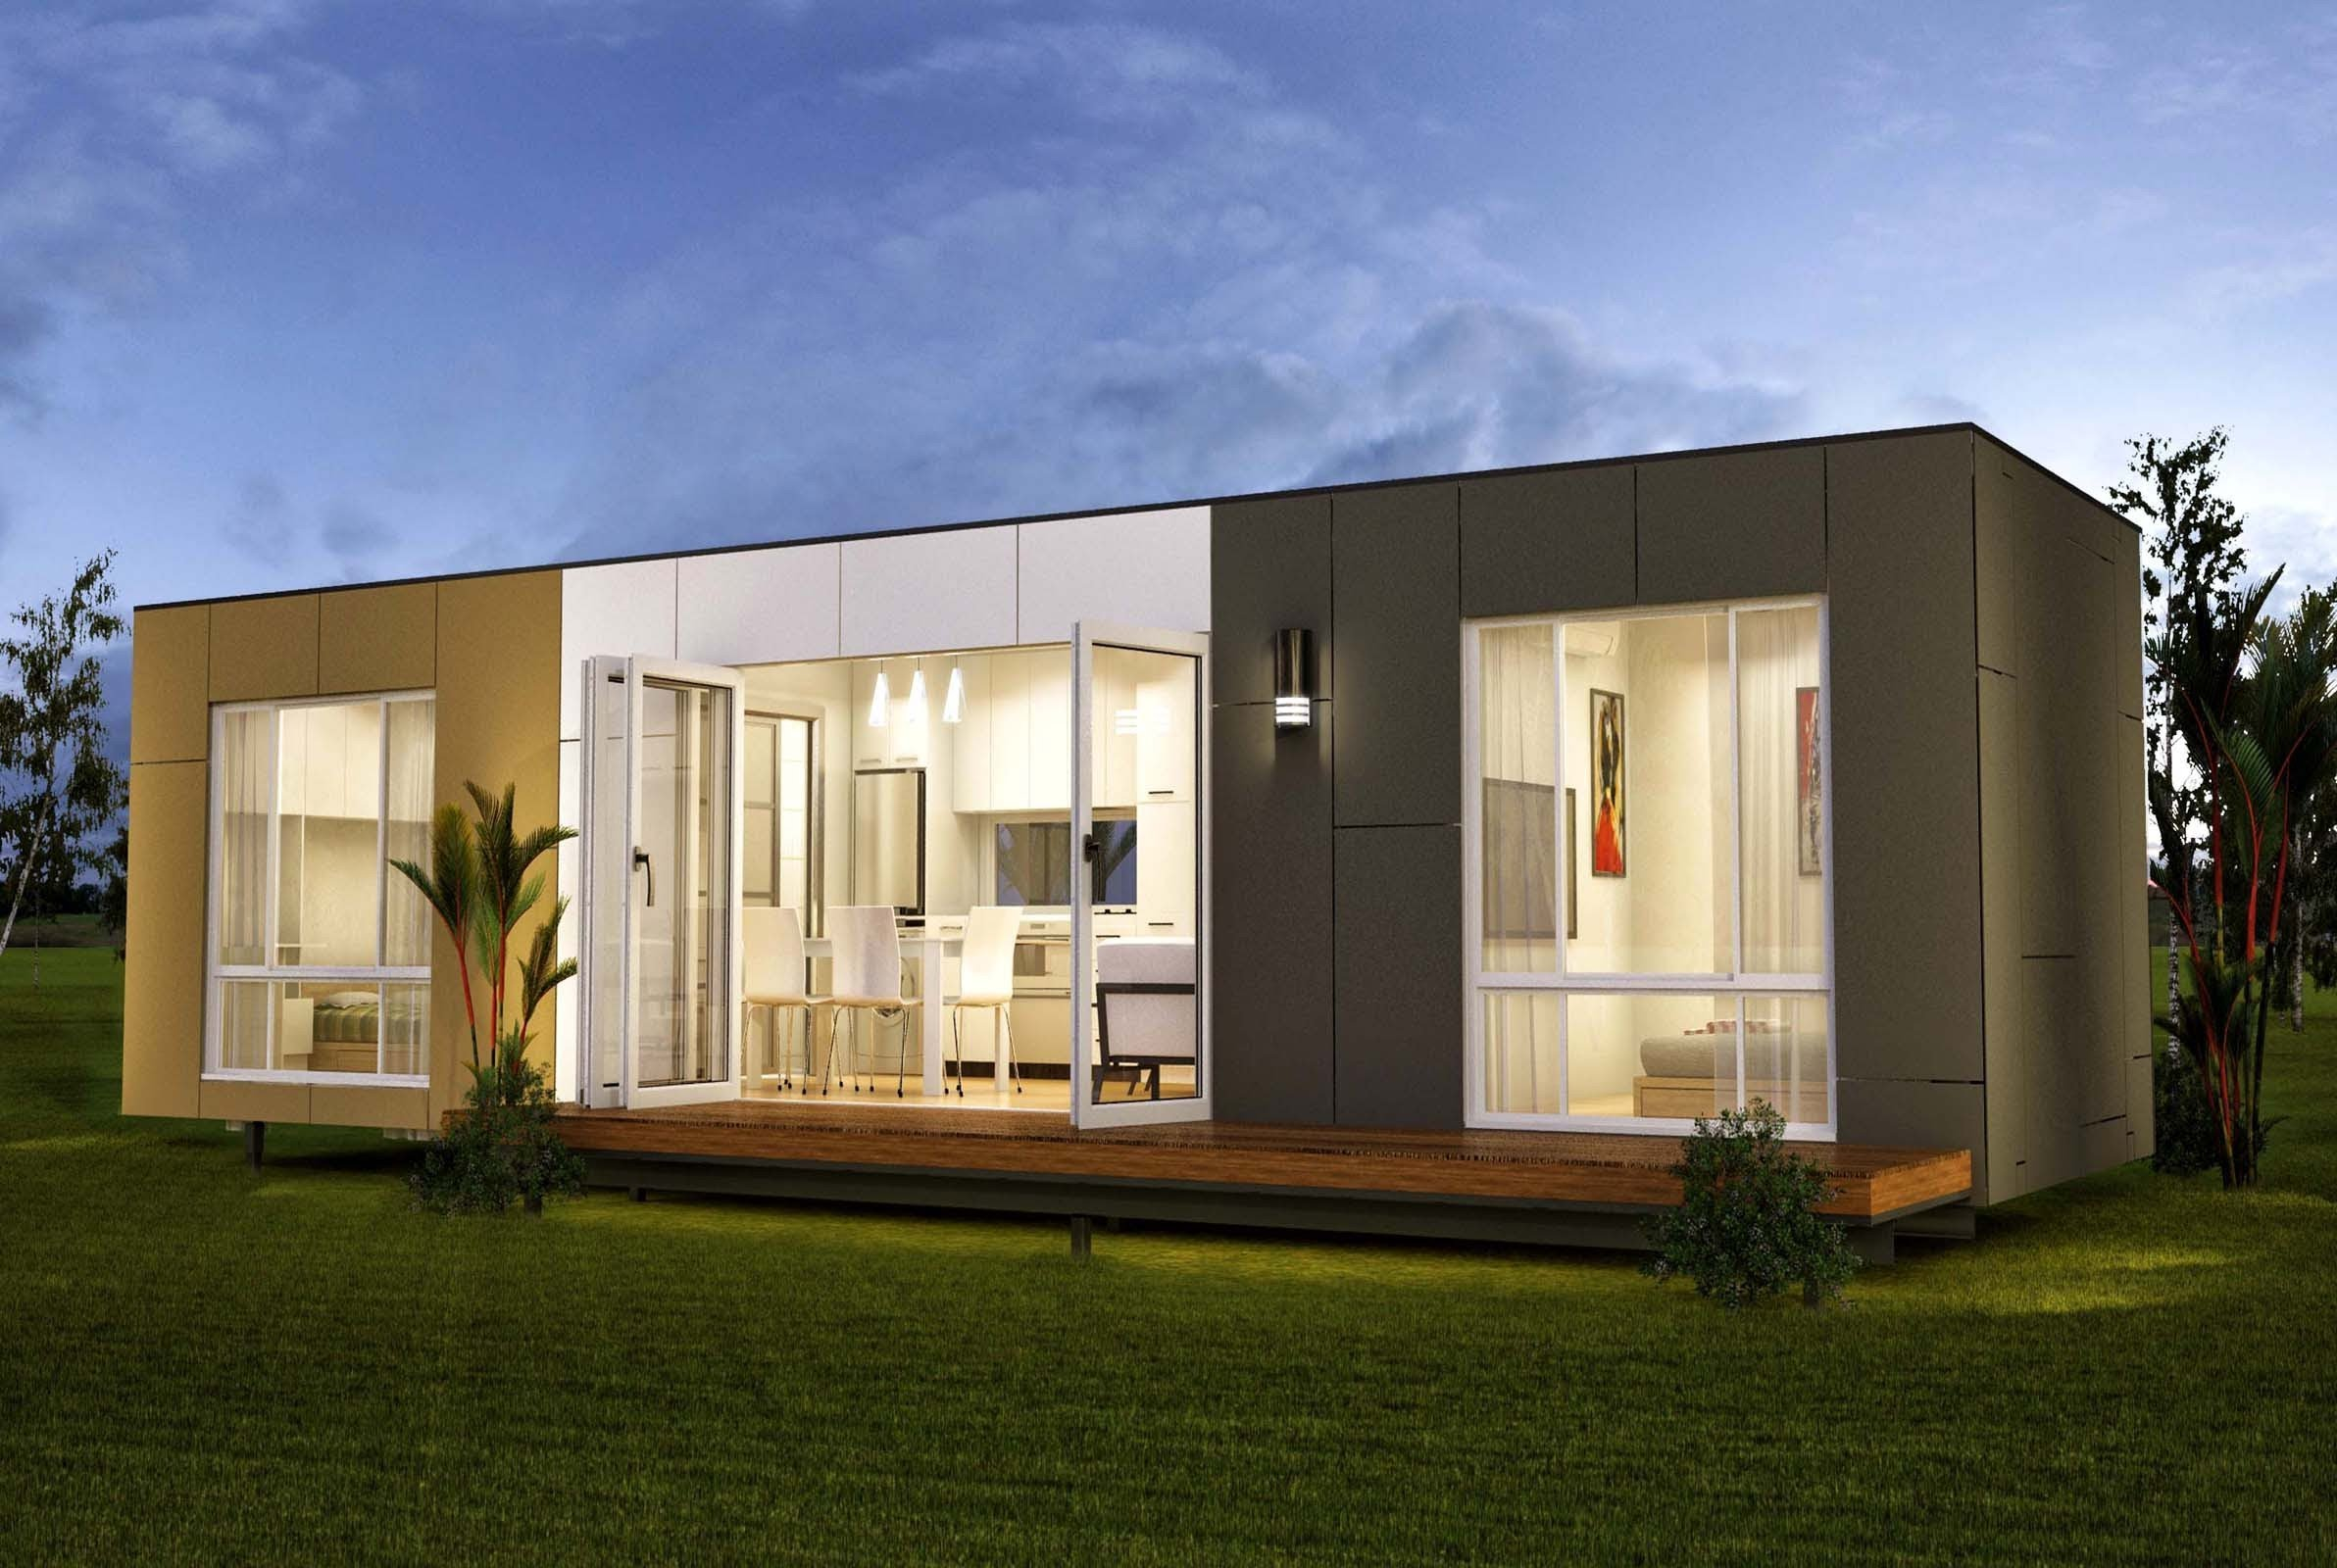 innovative prefab container homes photo 2 - Container Home Design Ideas